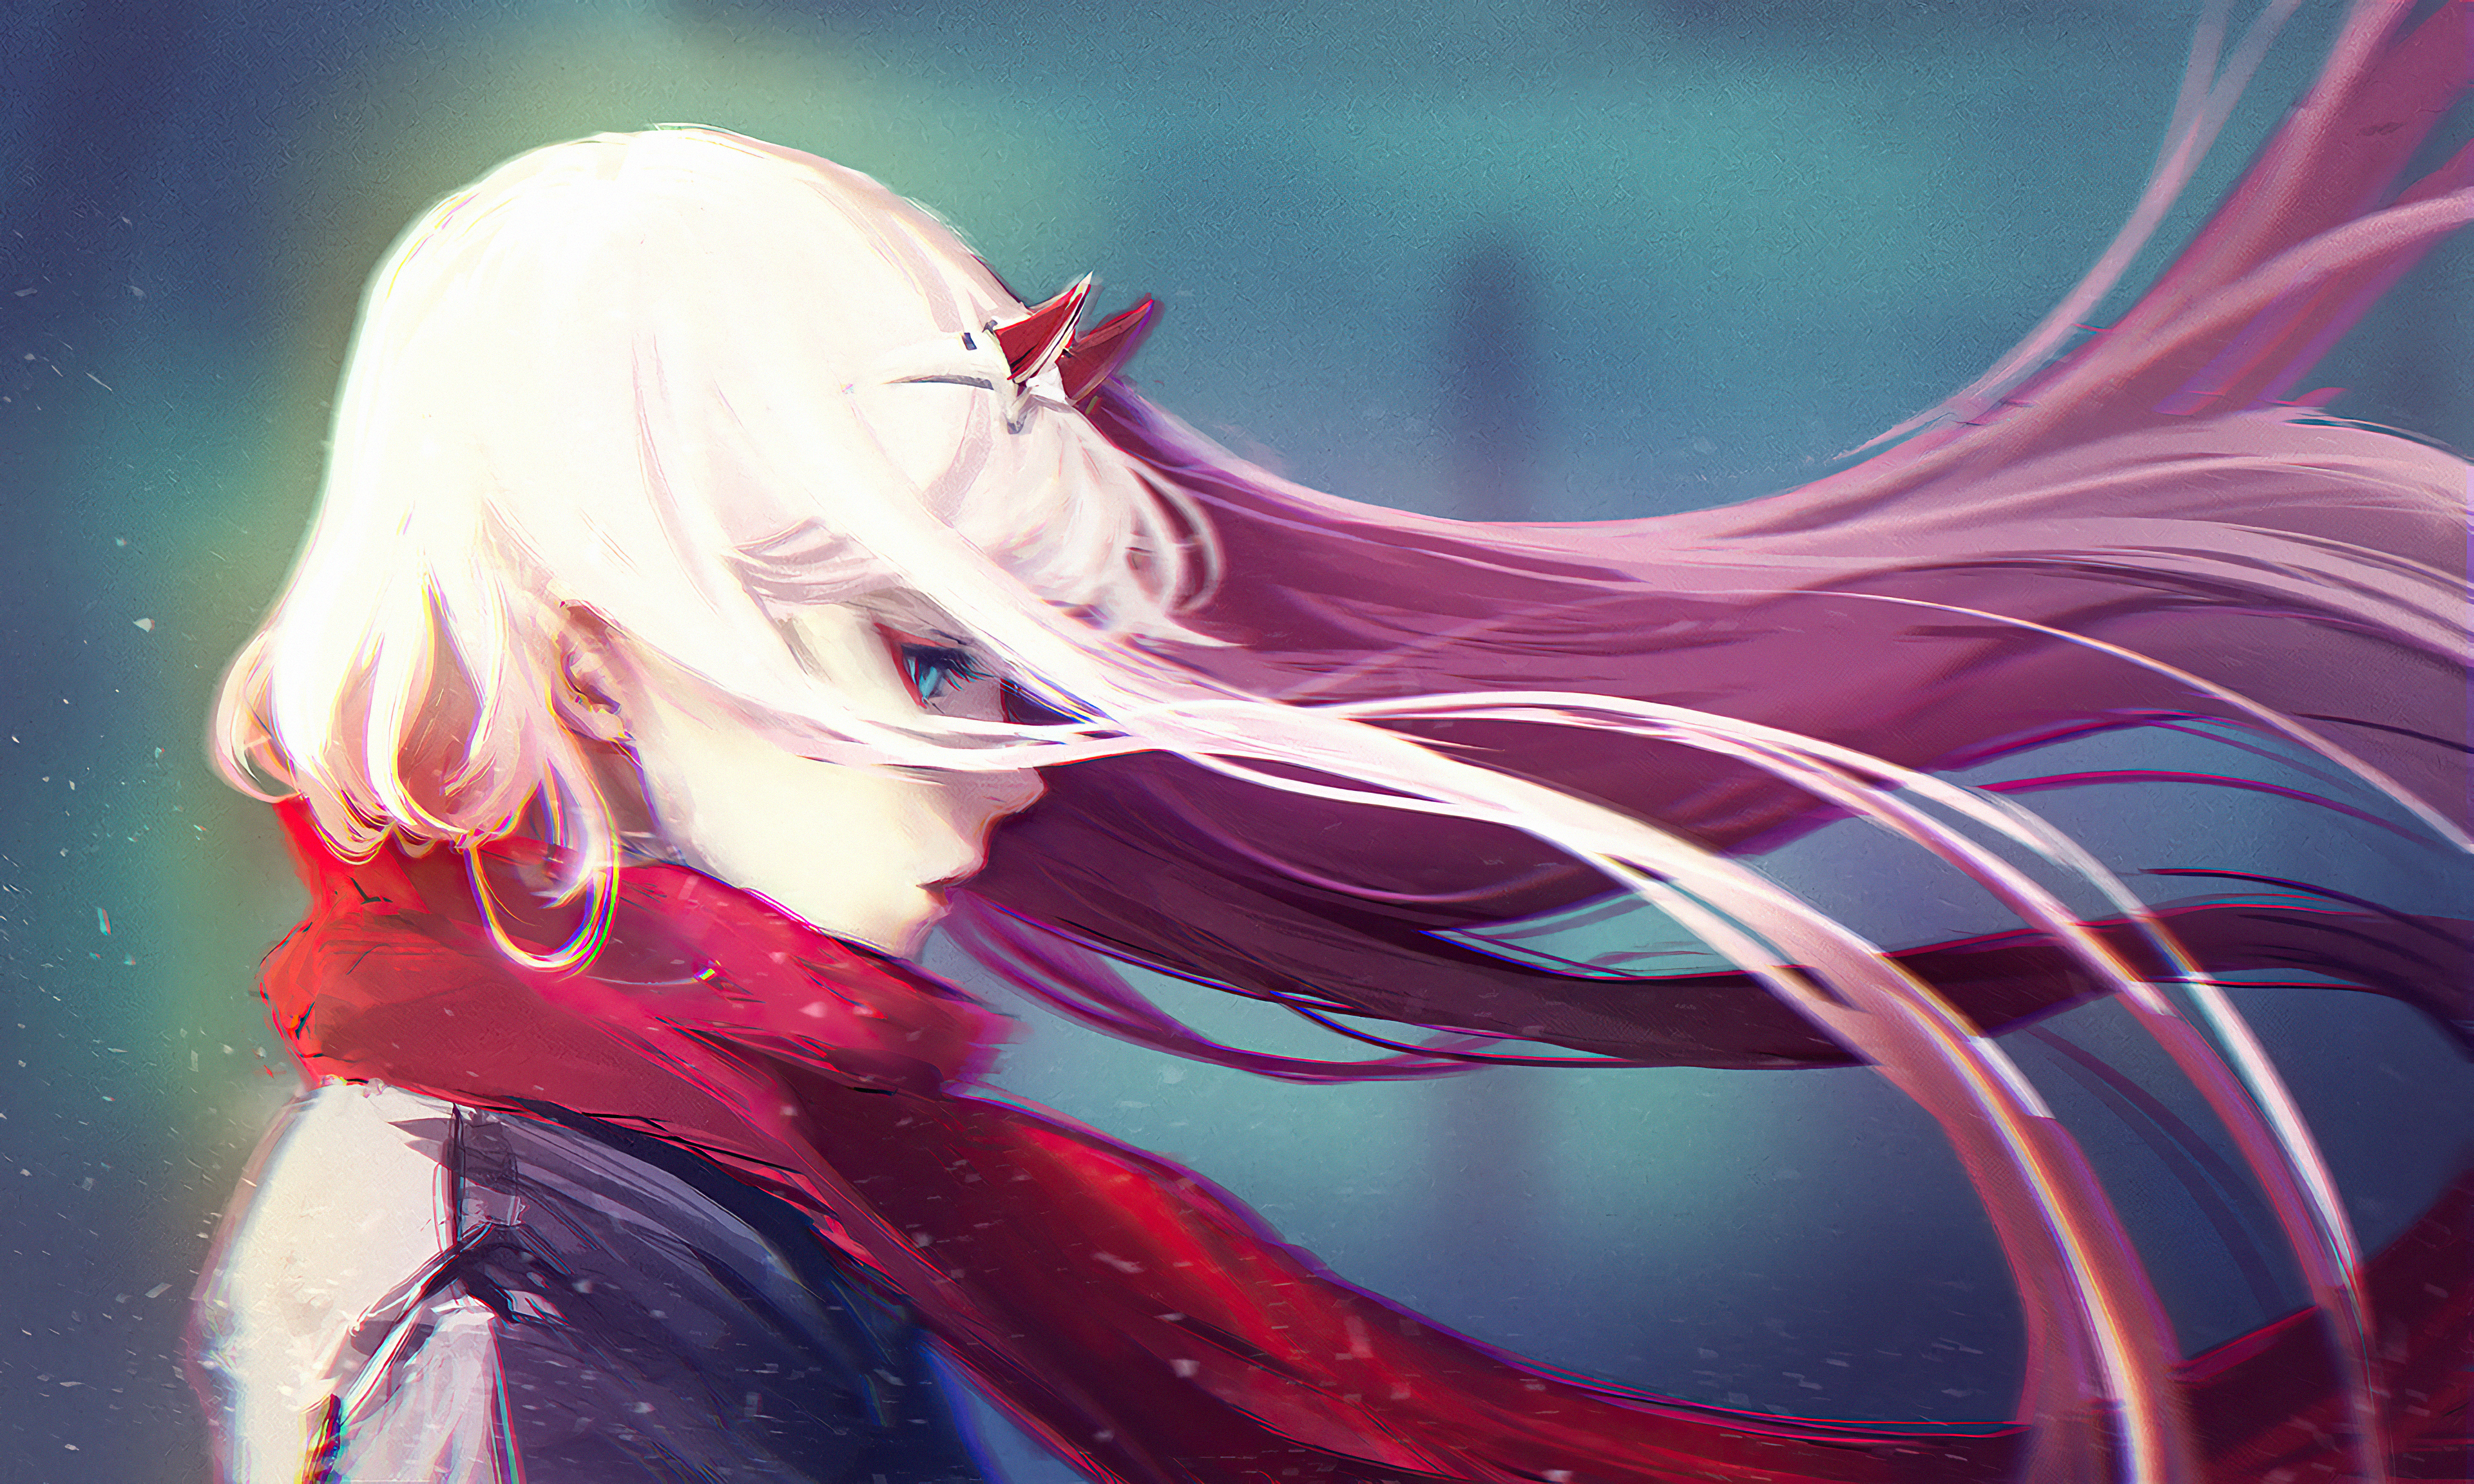 1366x768 Zero Two Darling In The Fran Xx 4k 1366x768 Resolution Hd 4k Wallpapers Images Backgrounds Photos And Pictures